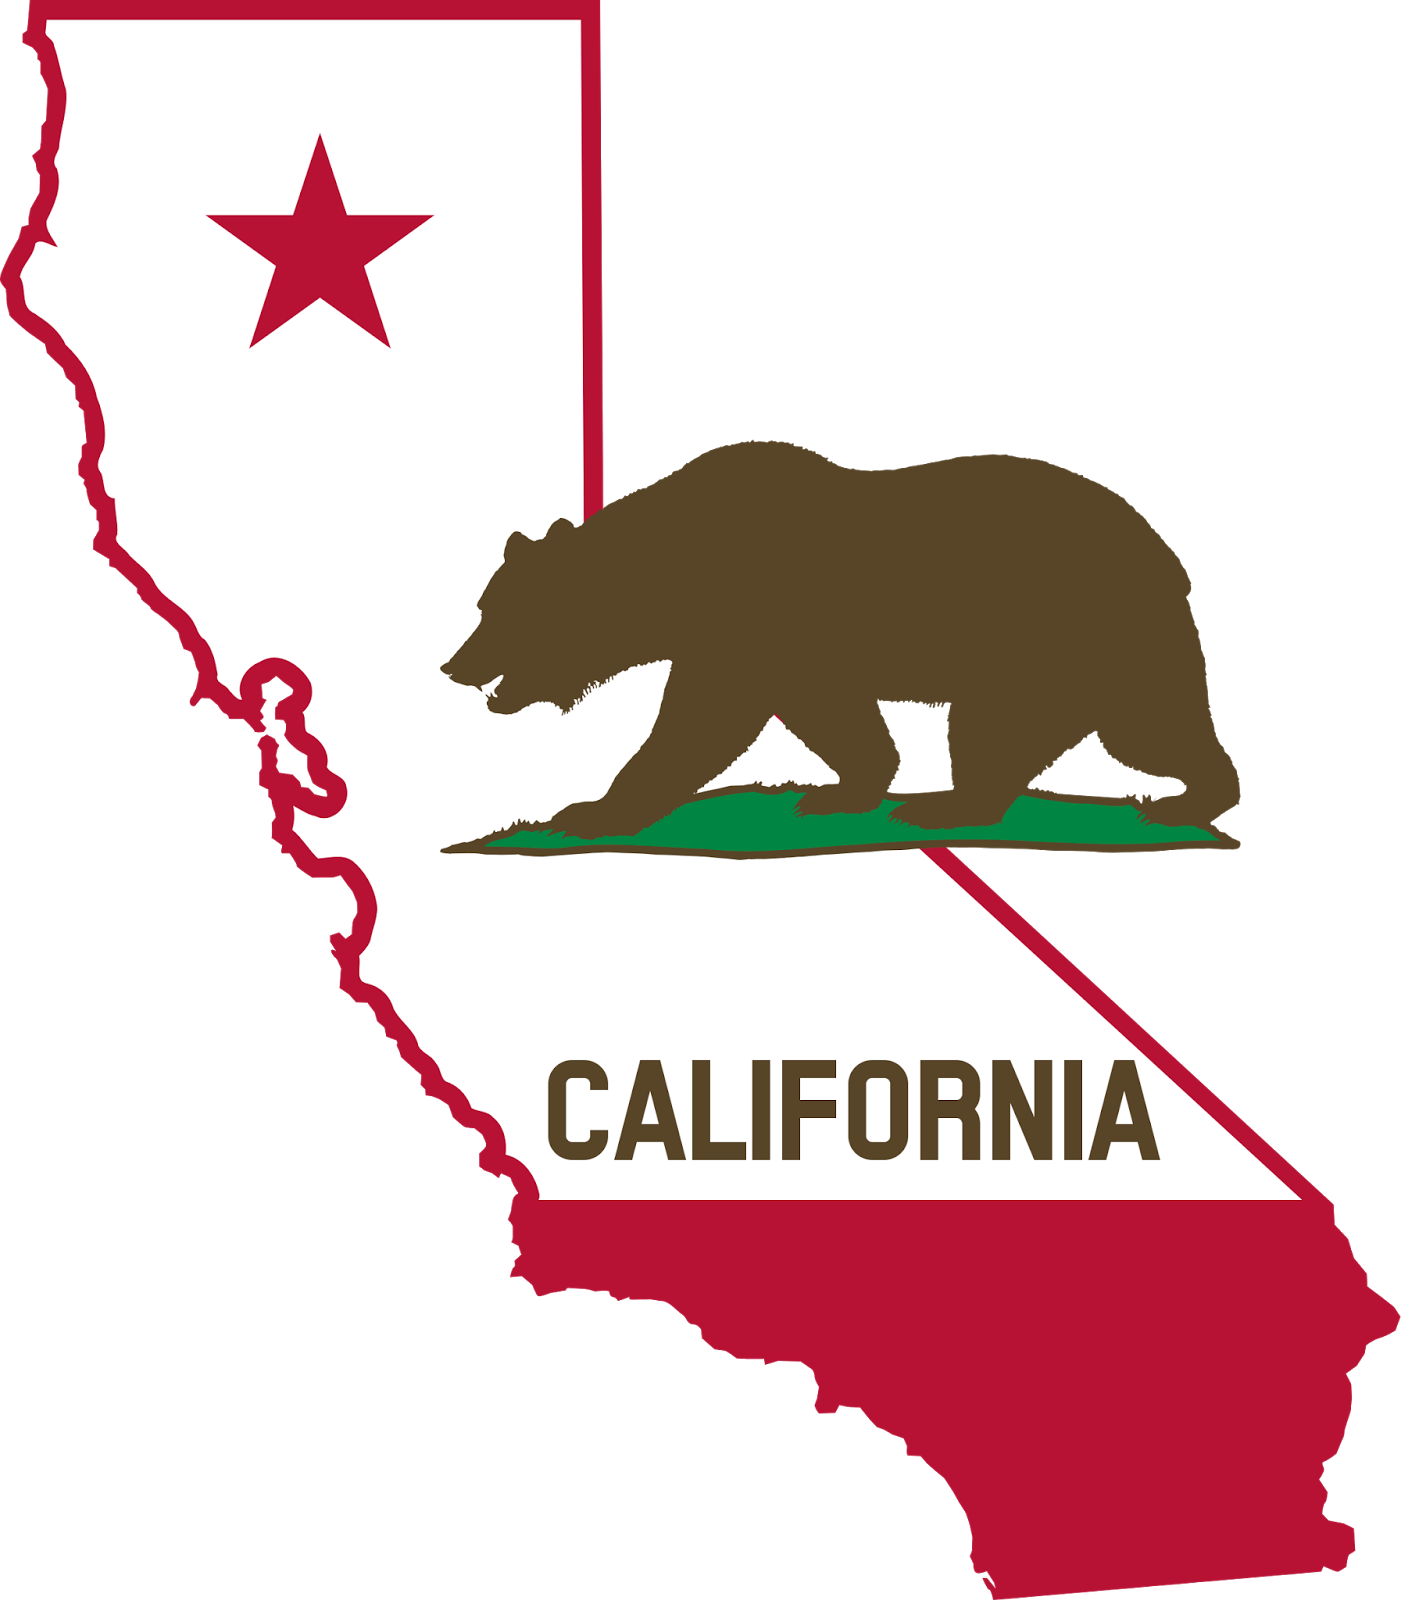 California Moving Towards Surpassing the United Kingdom as ...